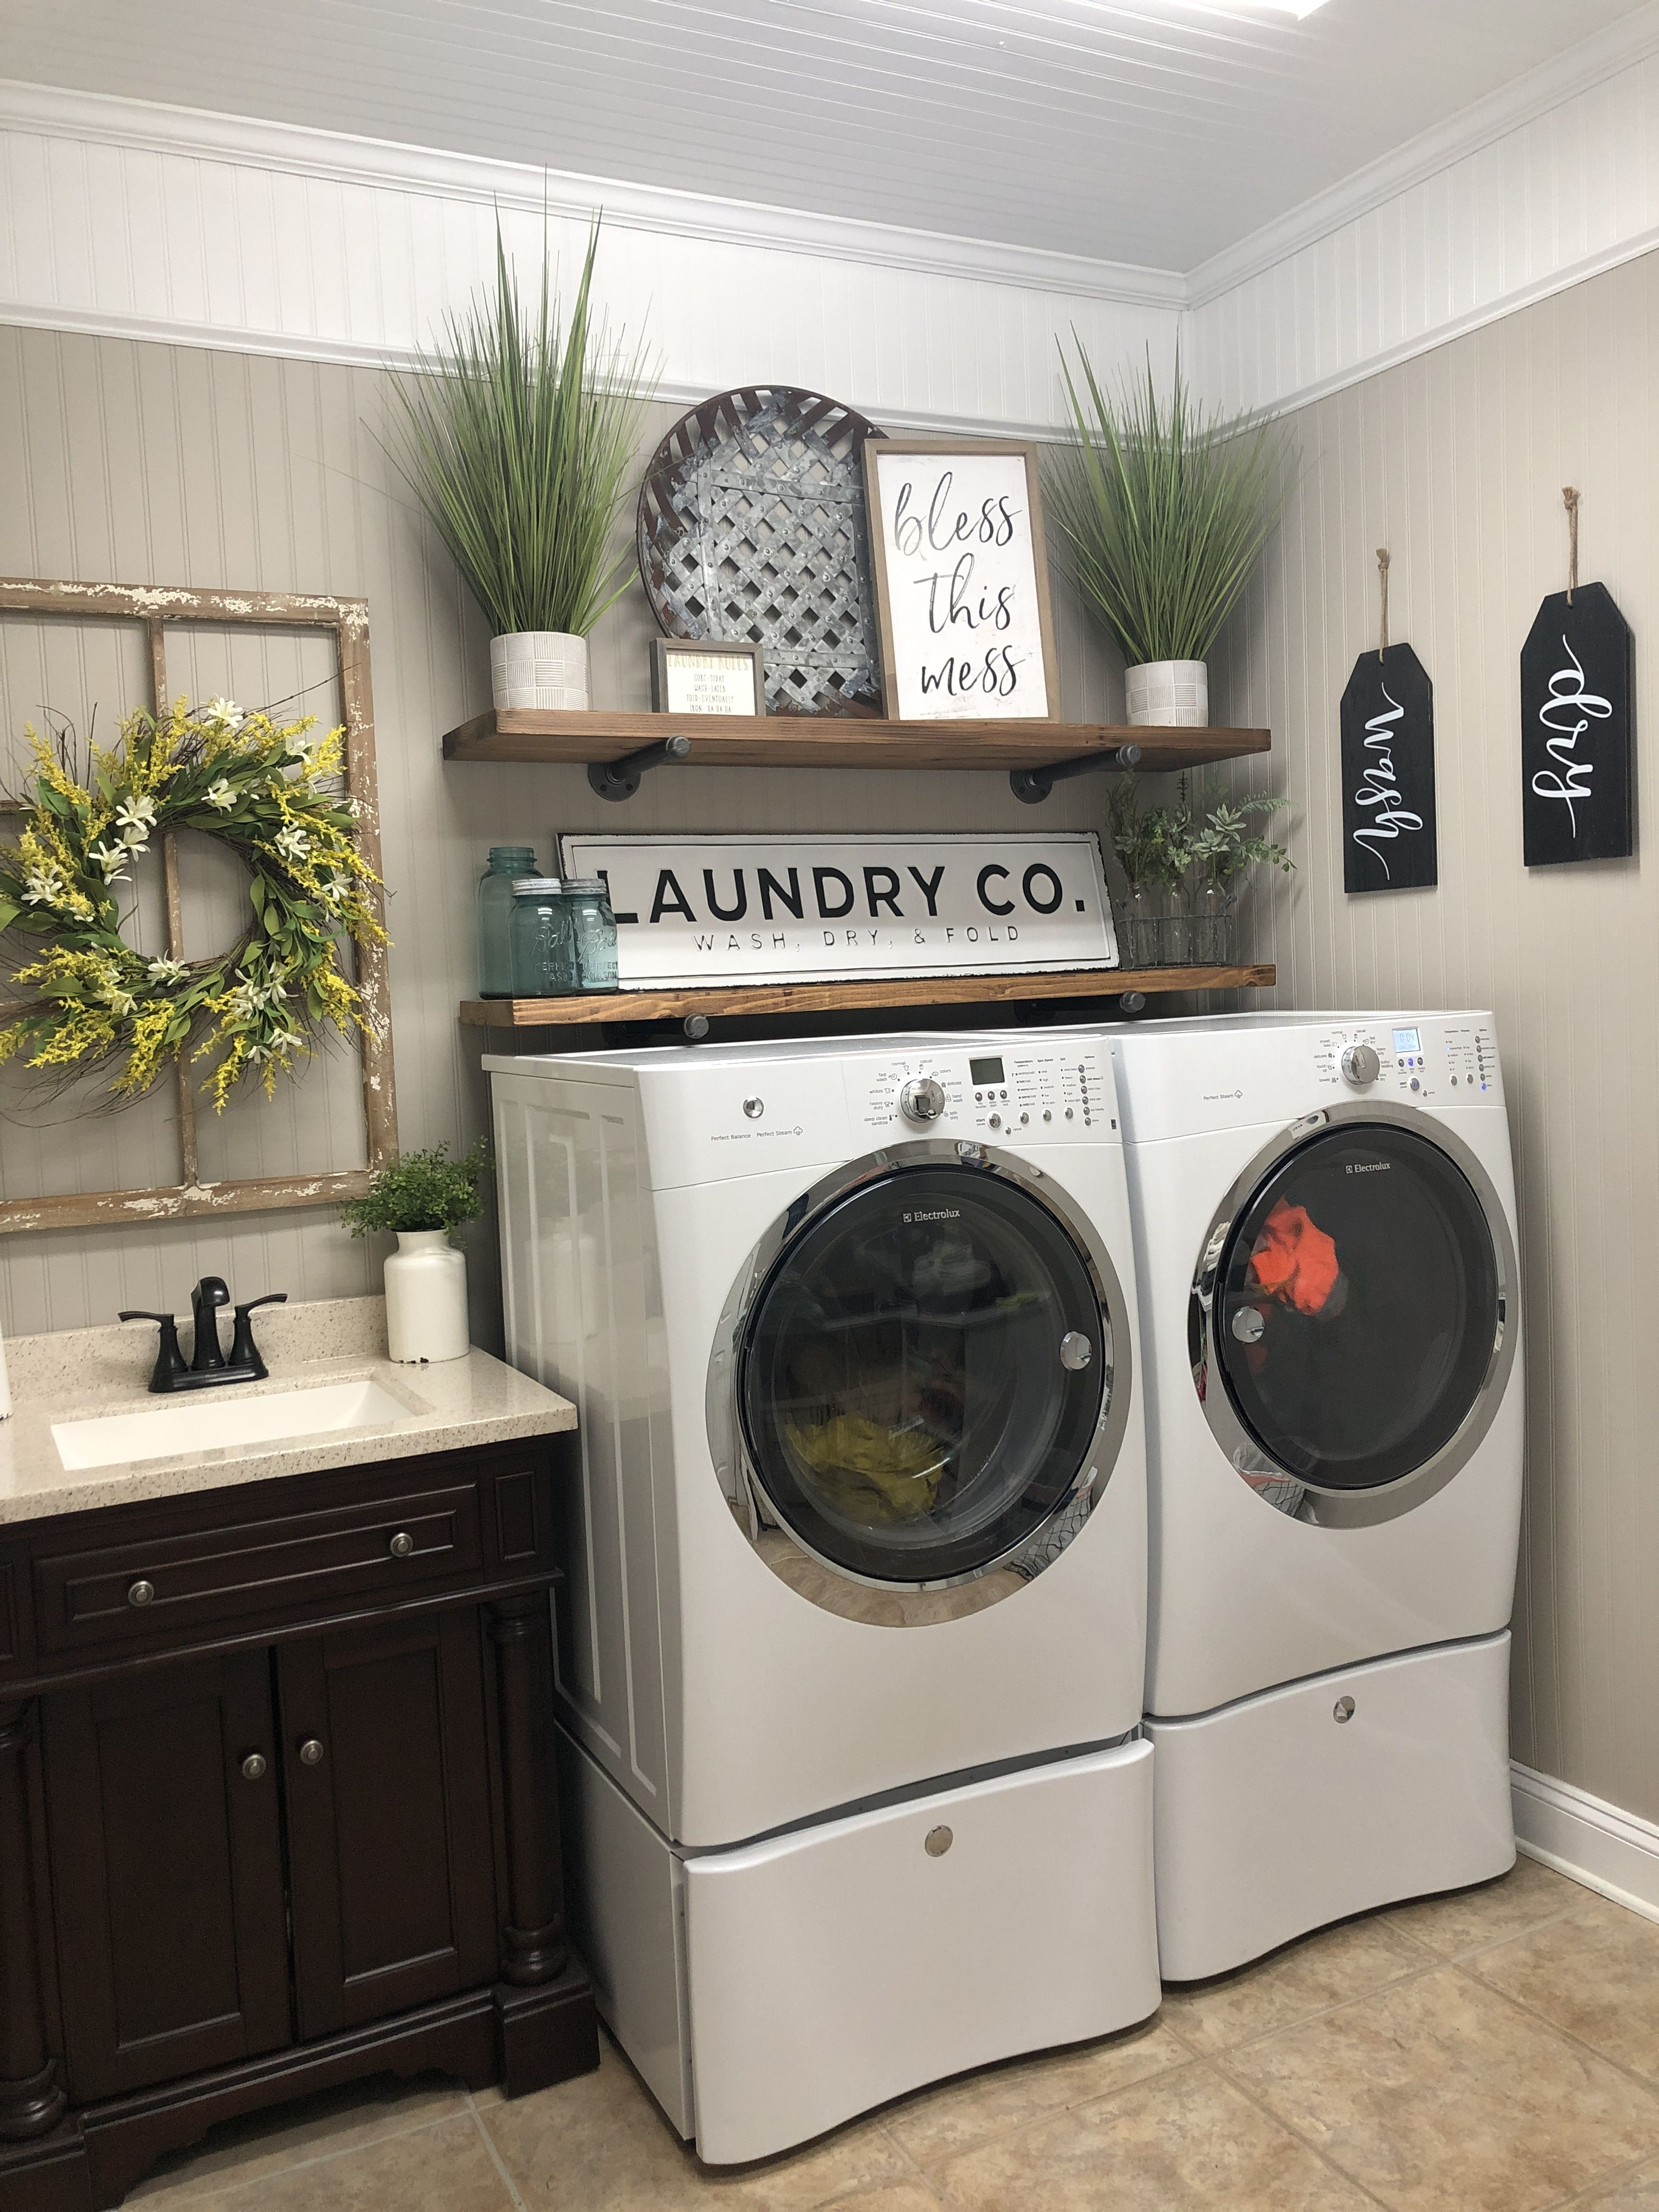 Modern Farmhouse Laundry Room 3piecebathroomremodel Modern Laundry Rooms Laundry Room Makeover Laundry Room Diy